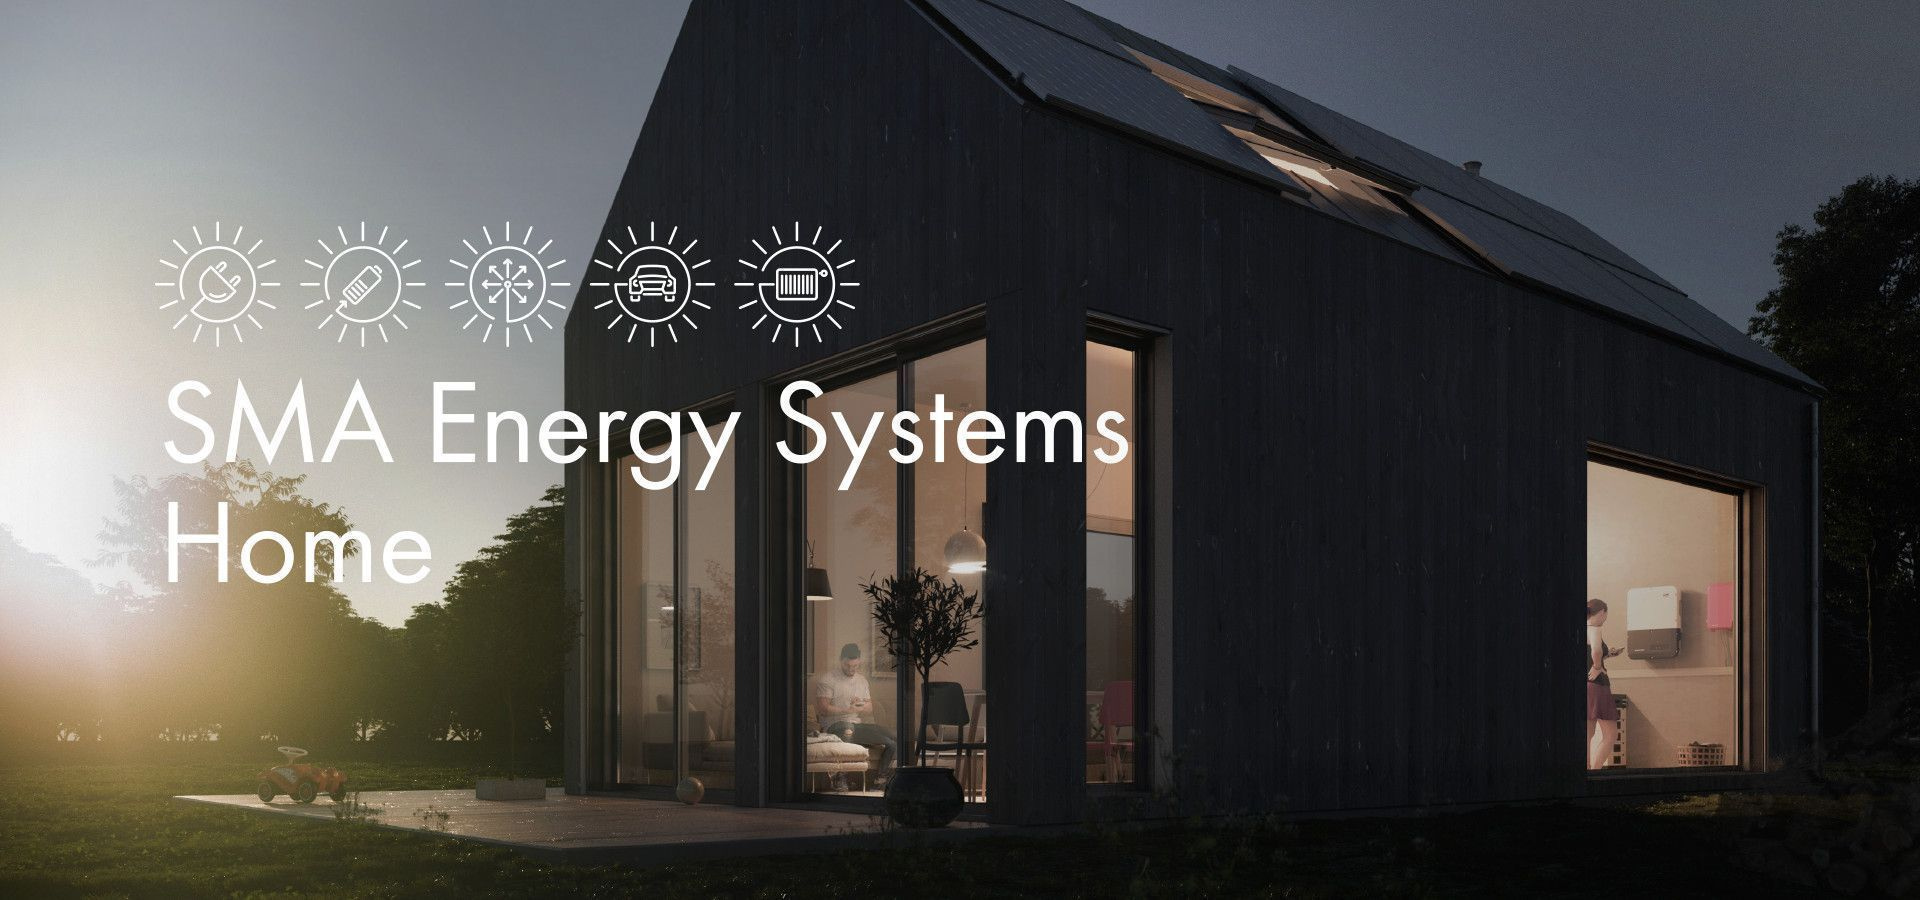 SMA Energy Systems Home